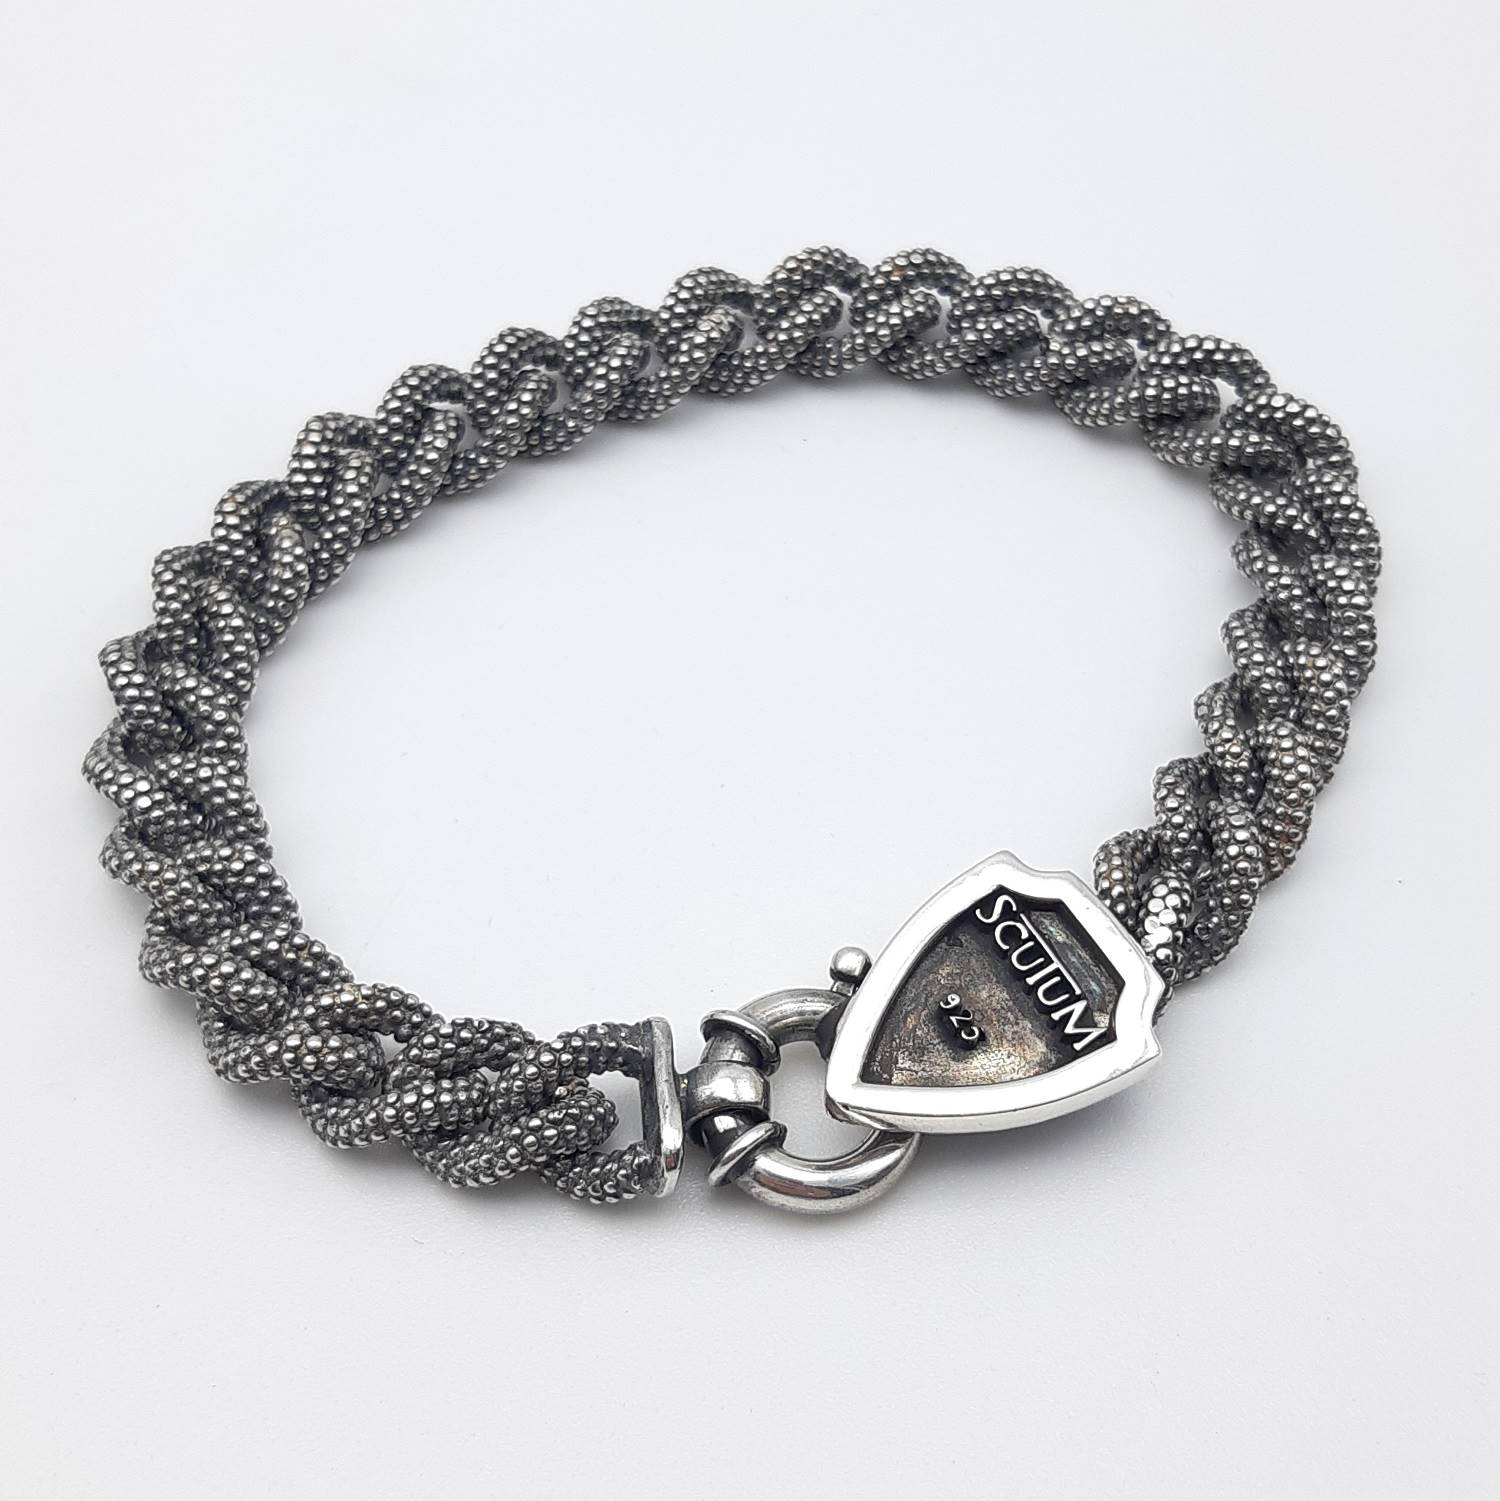 BRACCIALE BLACK GROUMETTE